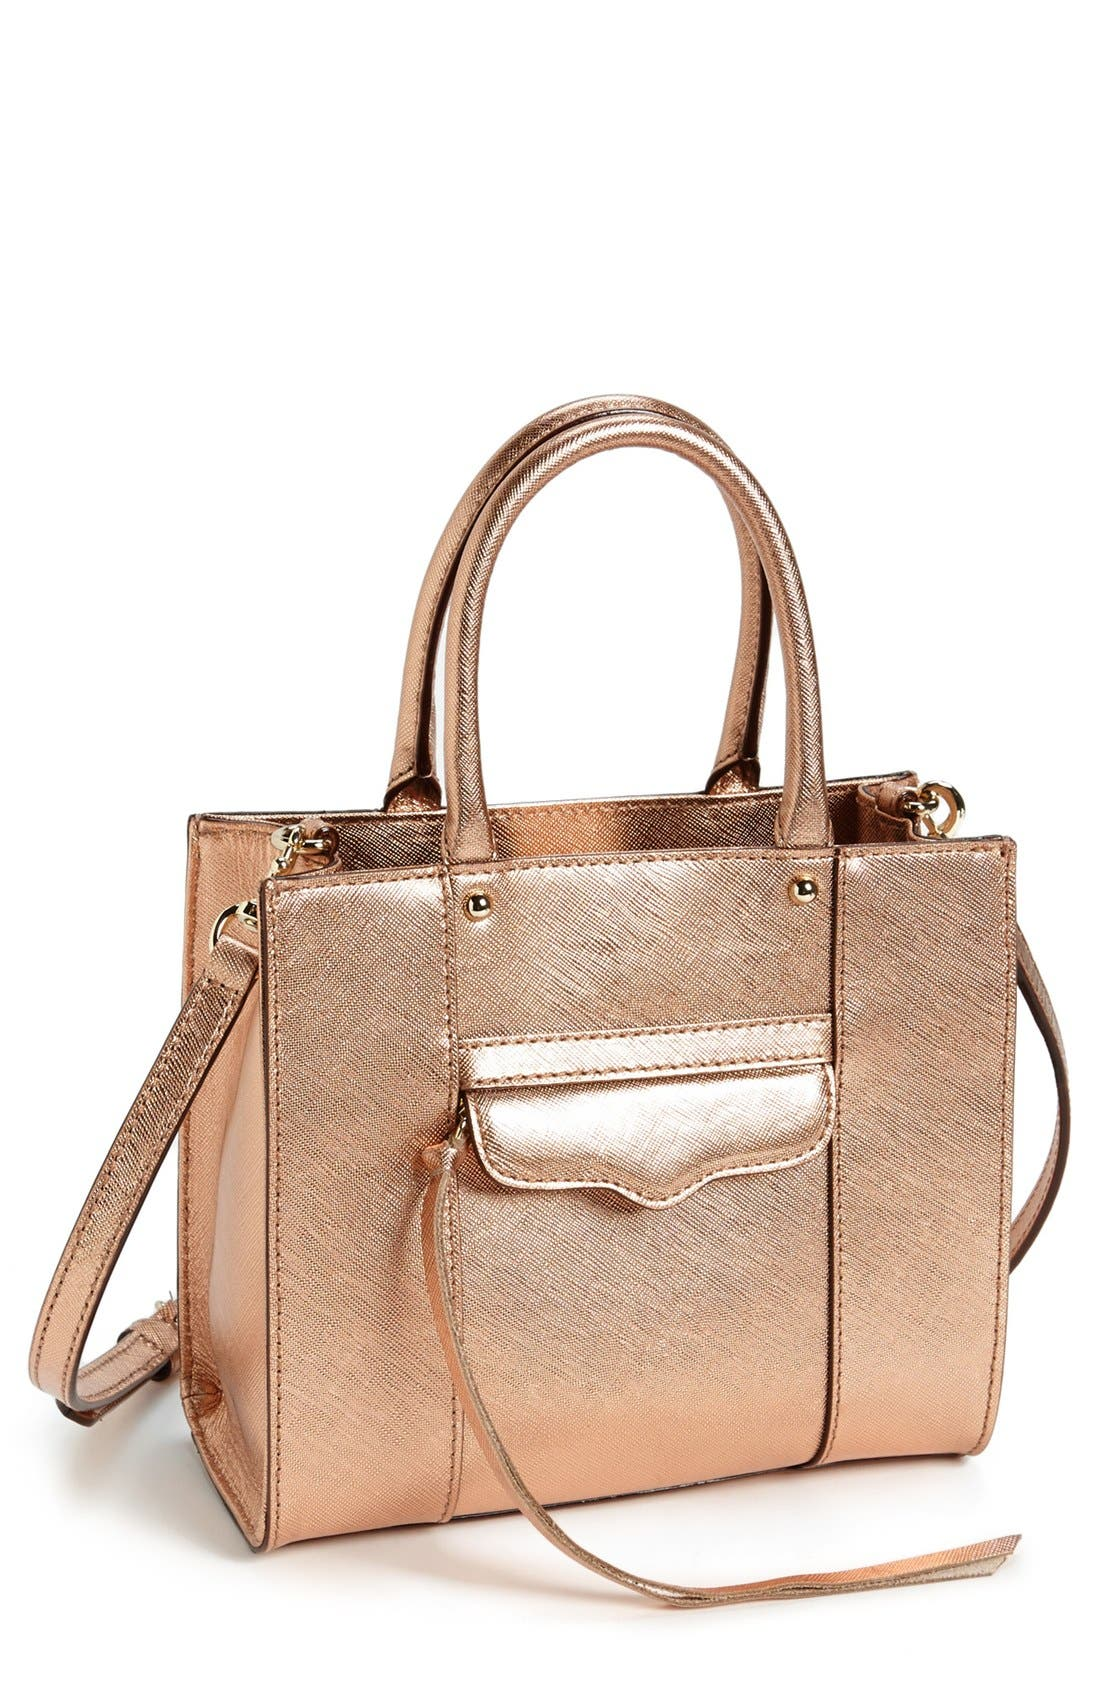 'Mini MAB Tote' Crossbody Bag,                             Main thumbnail 11, color,